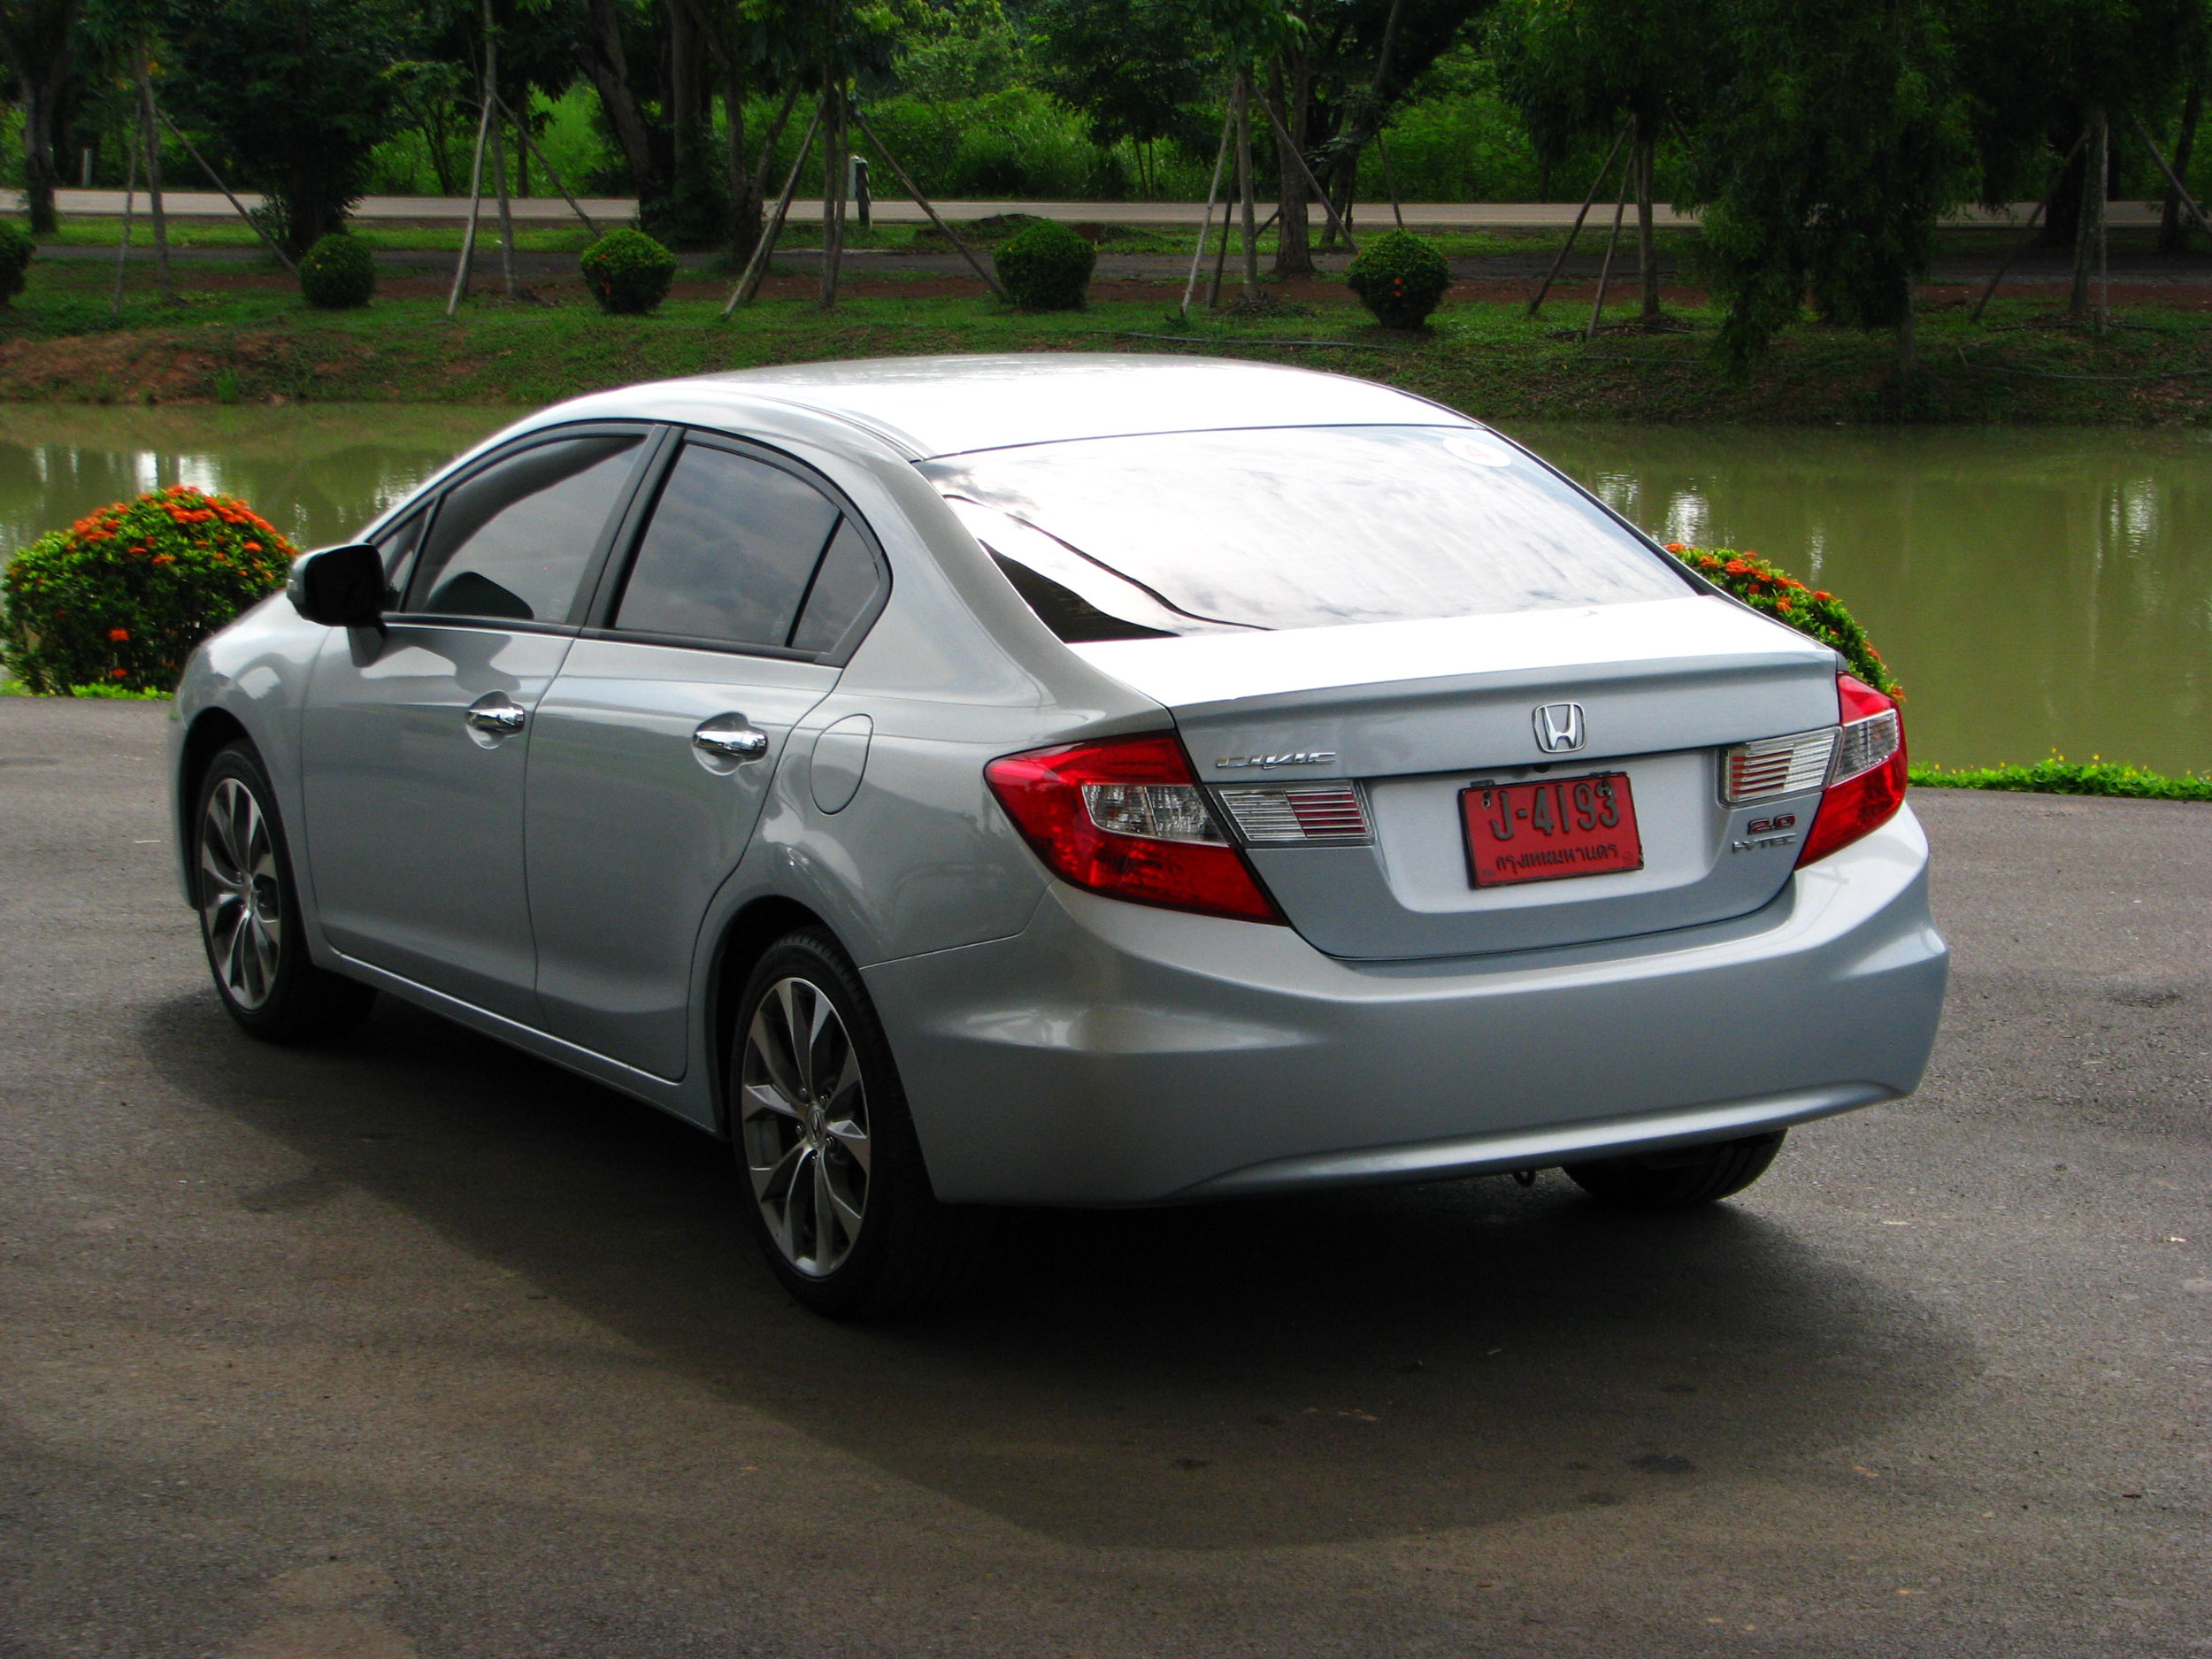 Driven 2012 Honda Civic Fb 9th Gen Previewed In Thailand Not Pretty But Handles